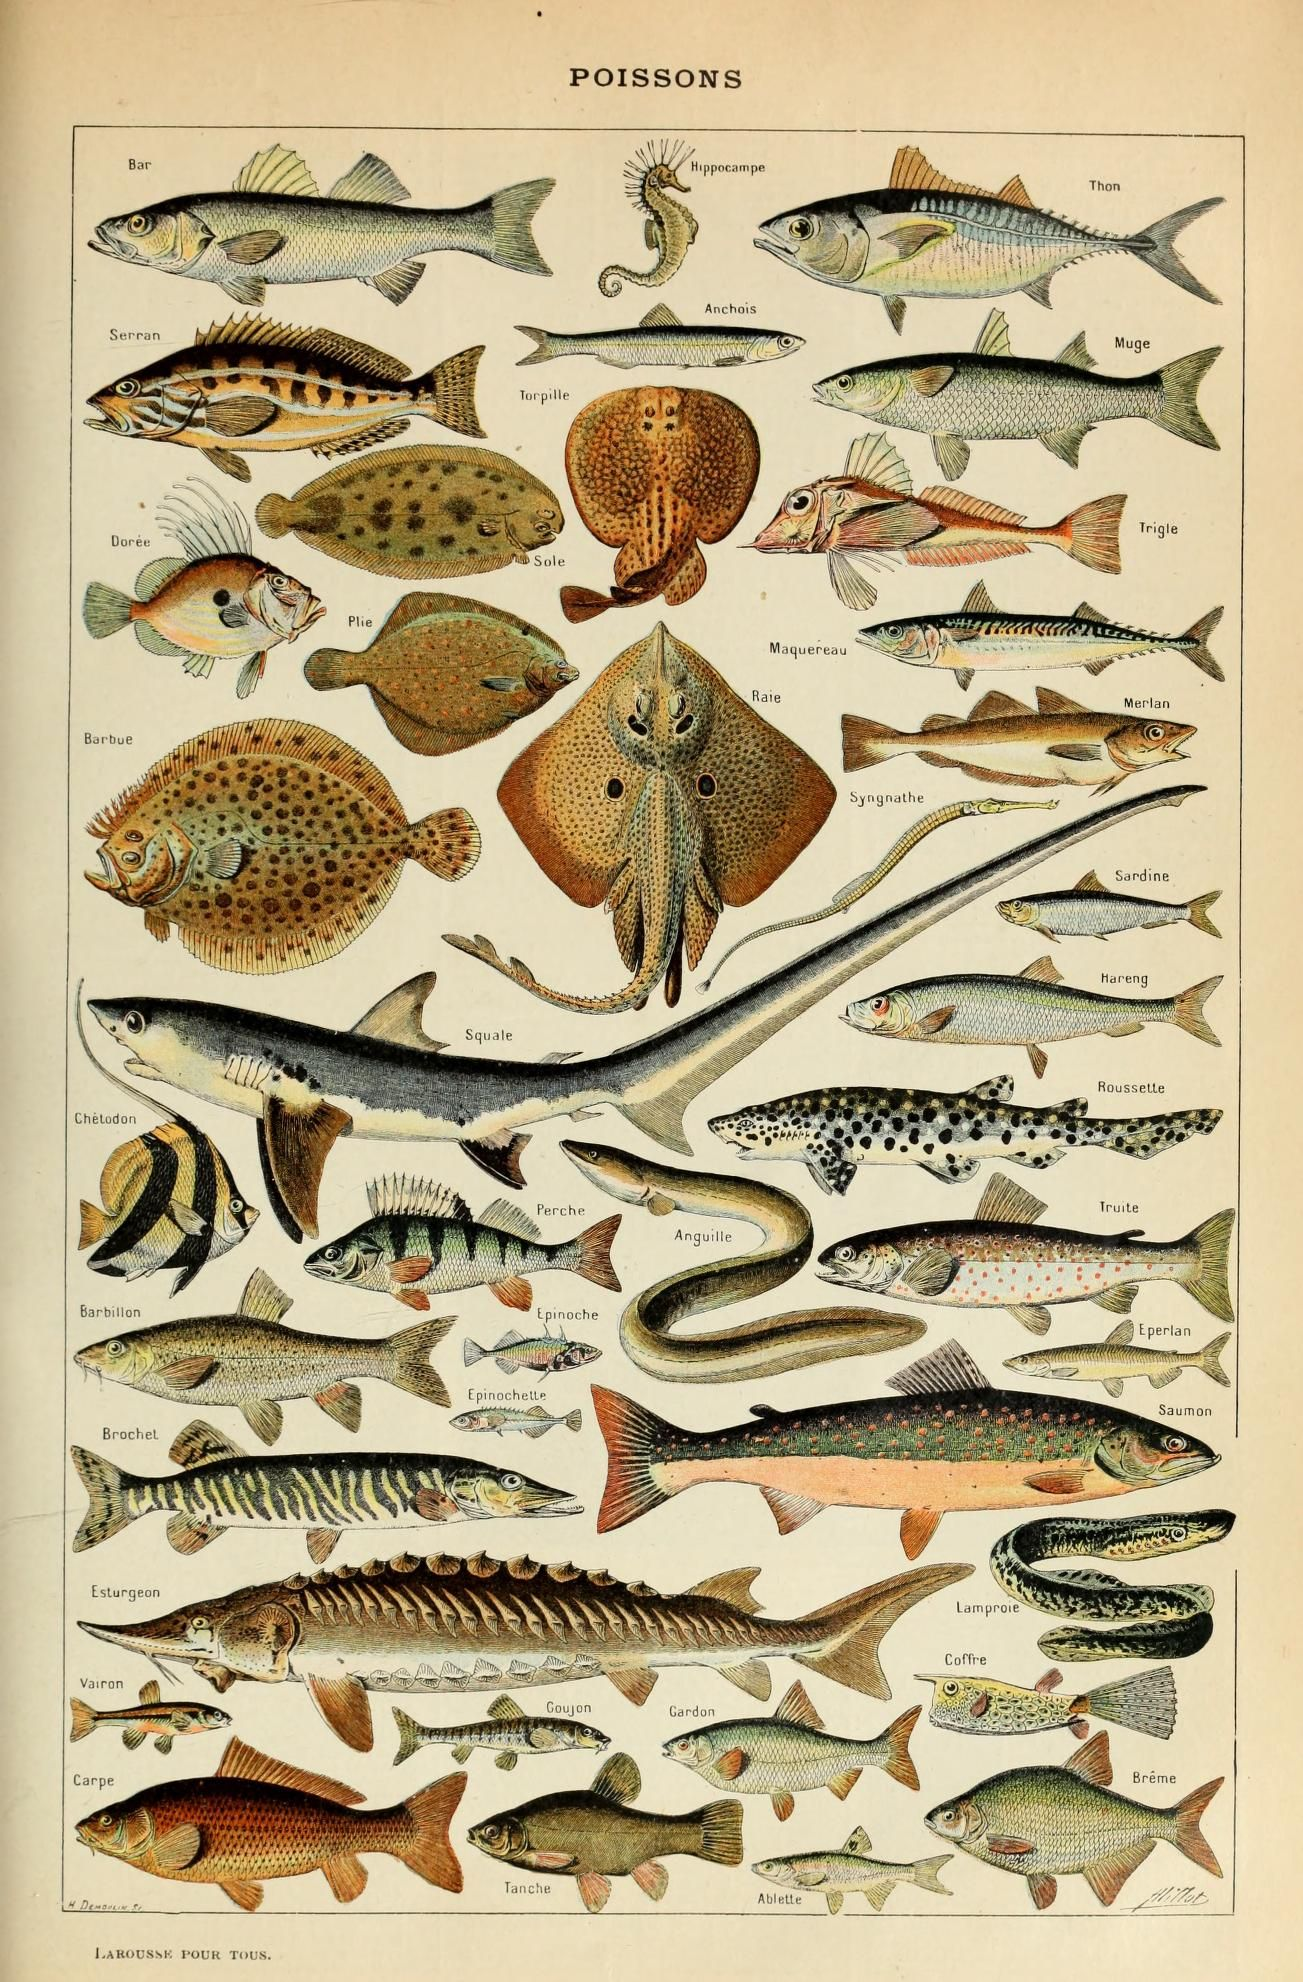 Le Larousse Pour Tous Poissons I Just Found This Print At A